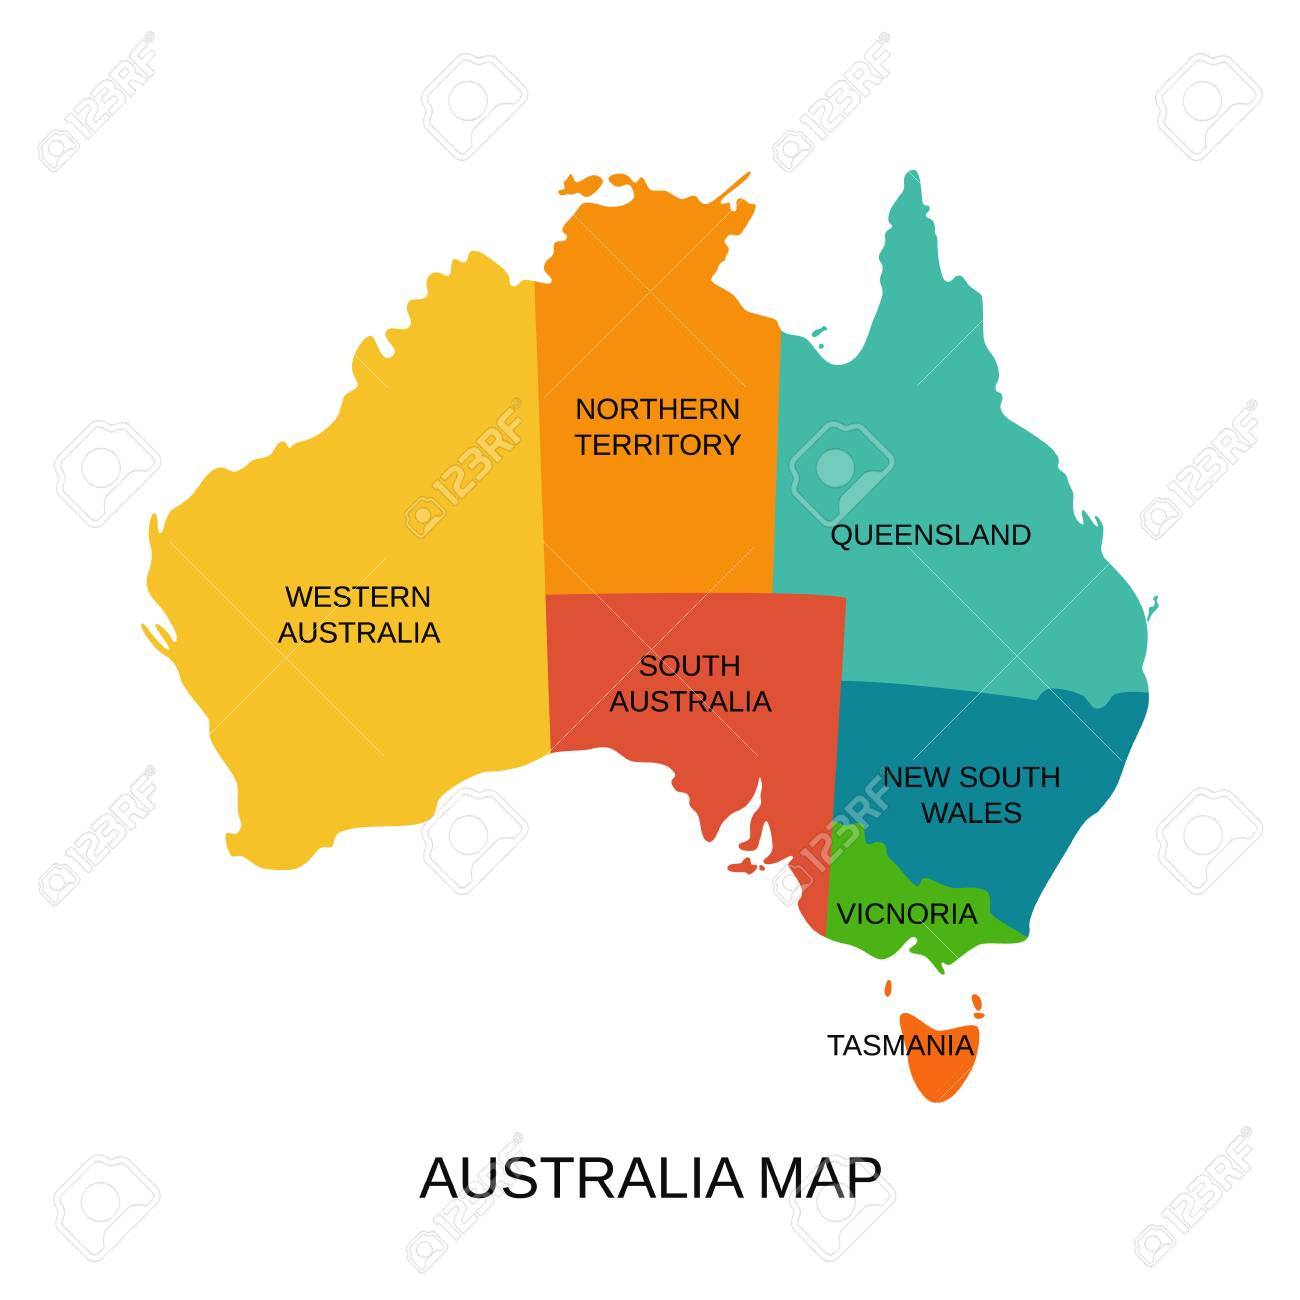 Australia map with regions. Vector. Australian state Western,..